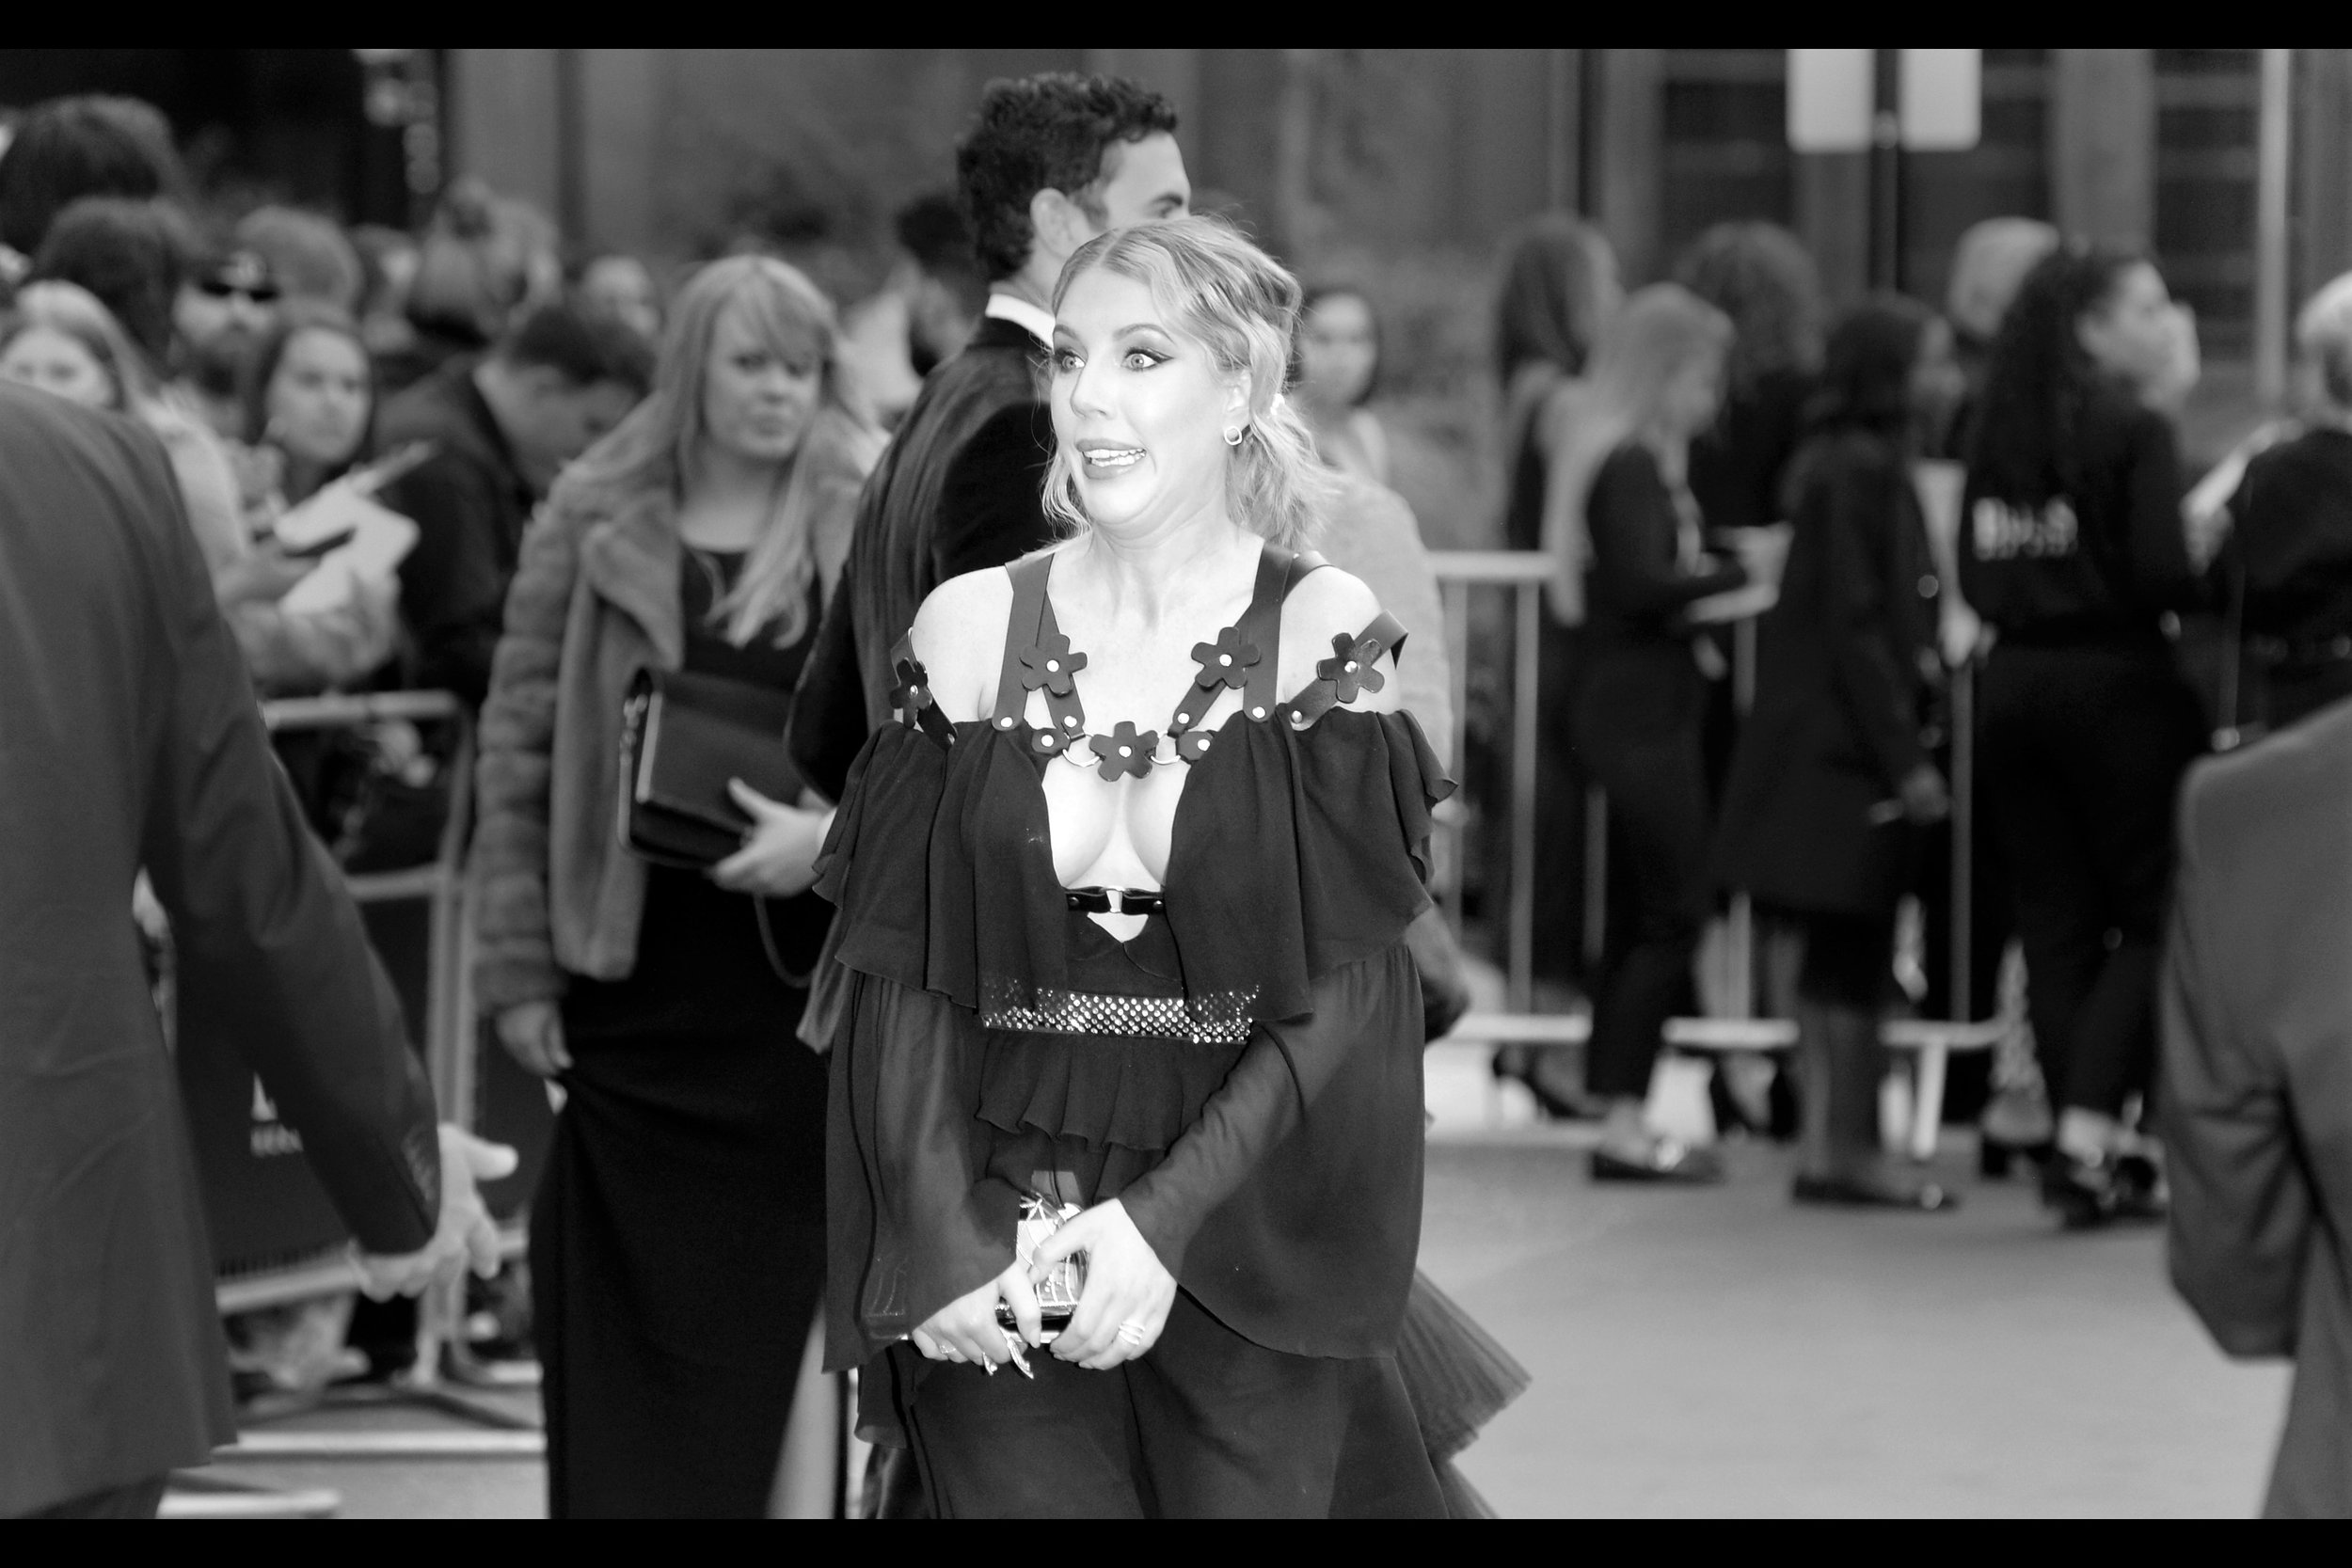 """I think I saw Sacha Baron Cohen. Also, no : I am not Sacha Baron Cohen"" . Perhaps, but then again would Sacha Baron Cohen admit to that? If it's not SCB, it might be comedienne Katherine Ryan, who I last photographed at this year's    TV Baftas."